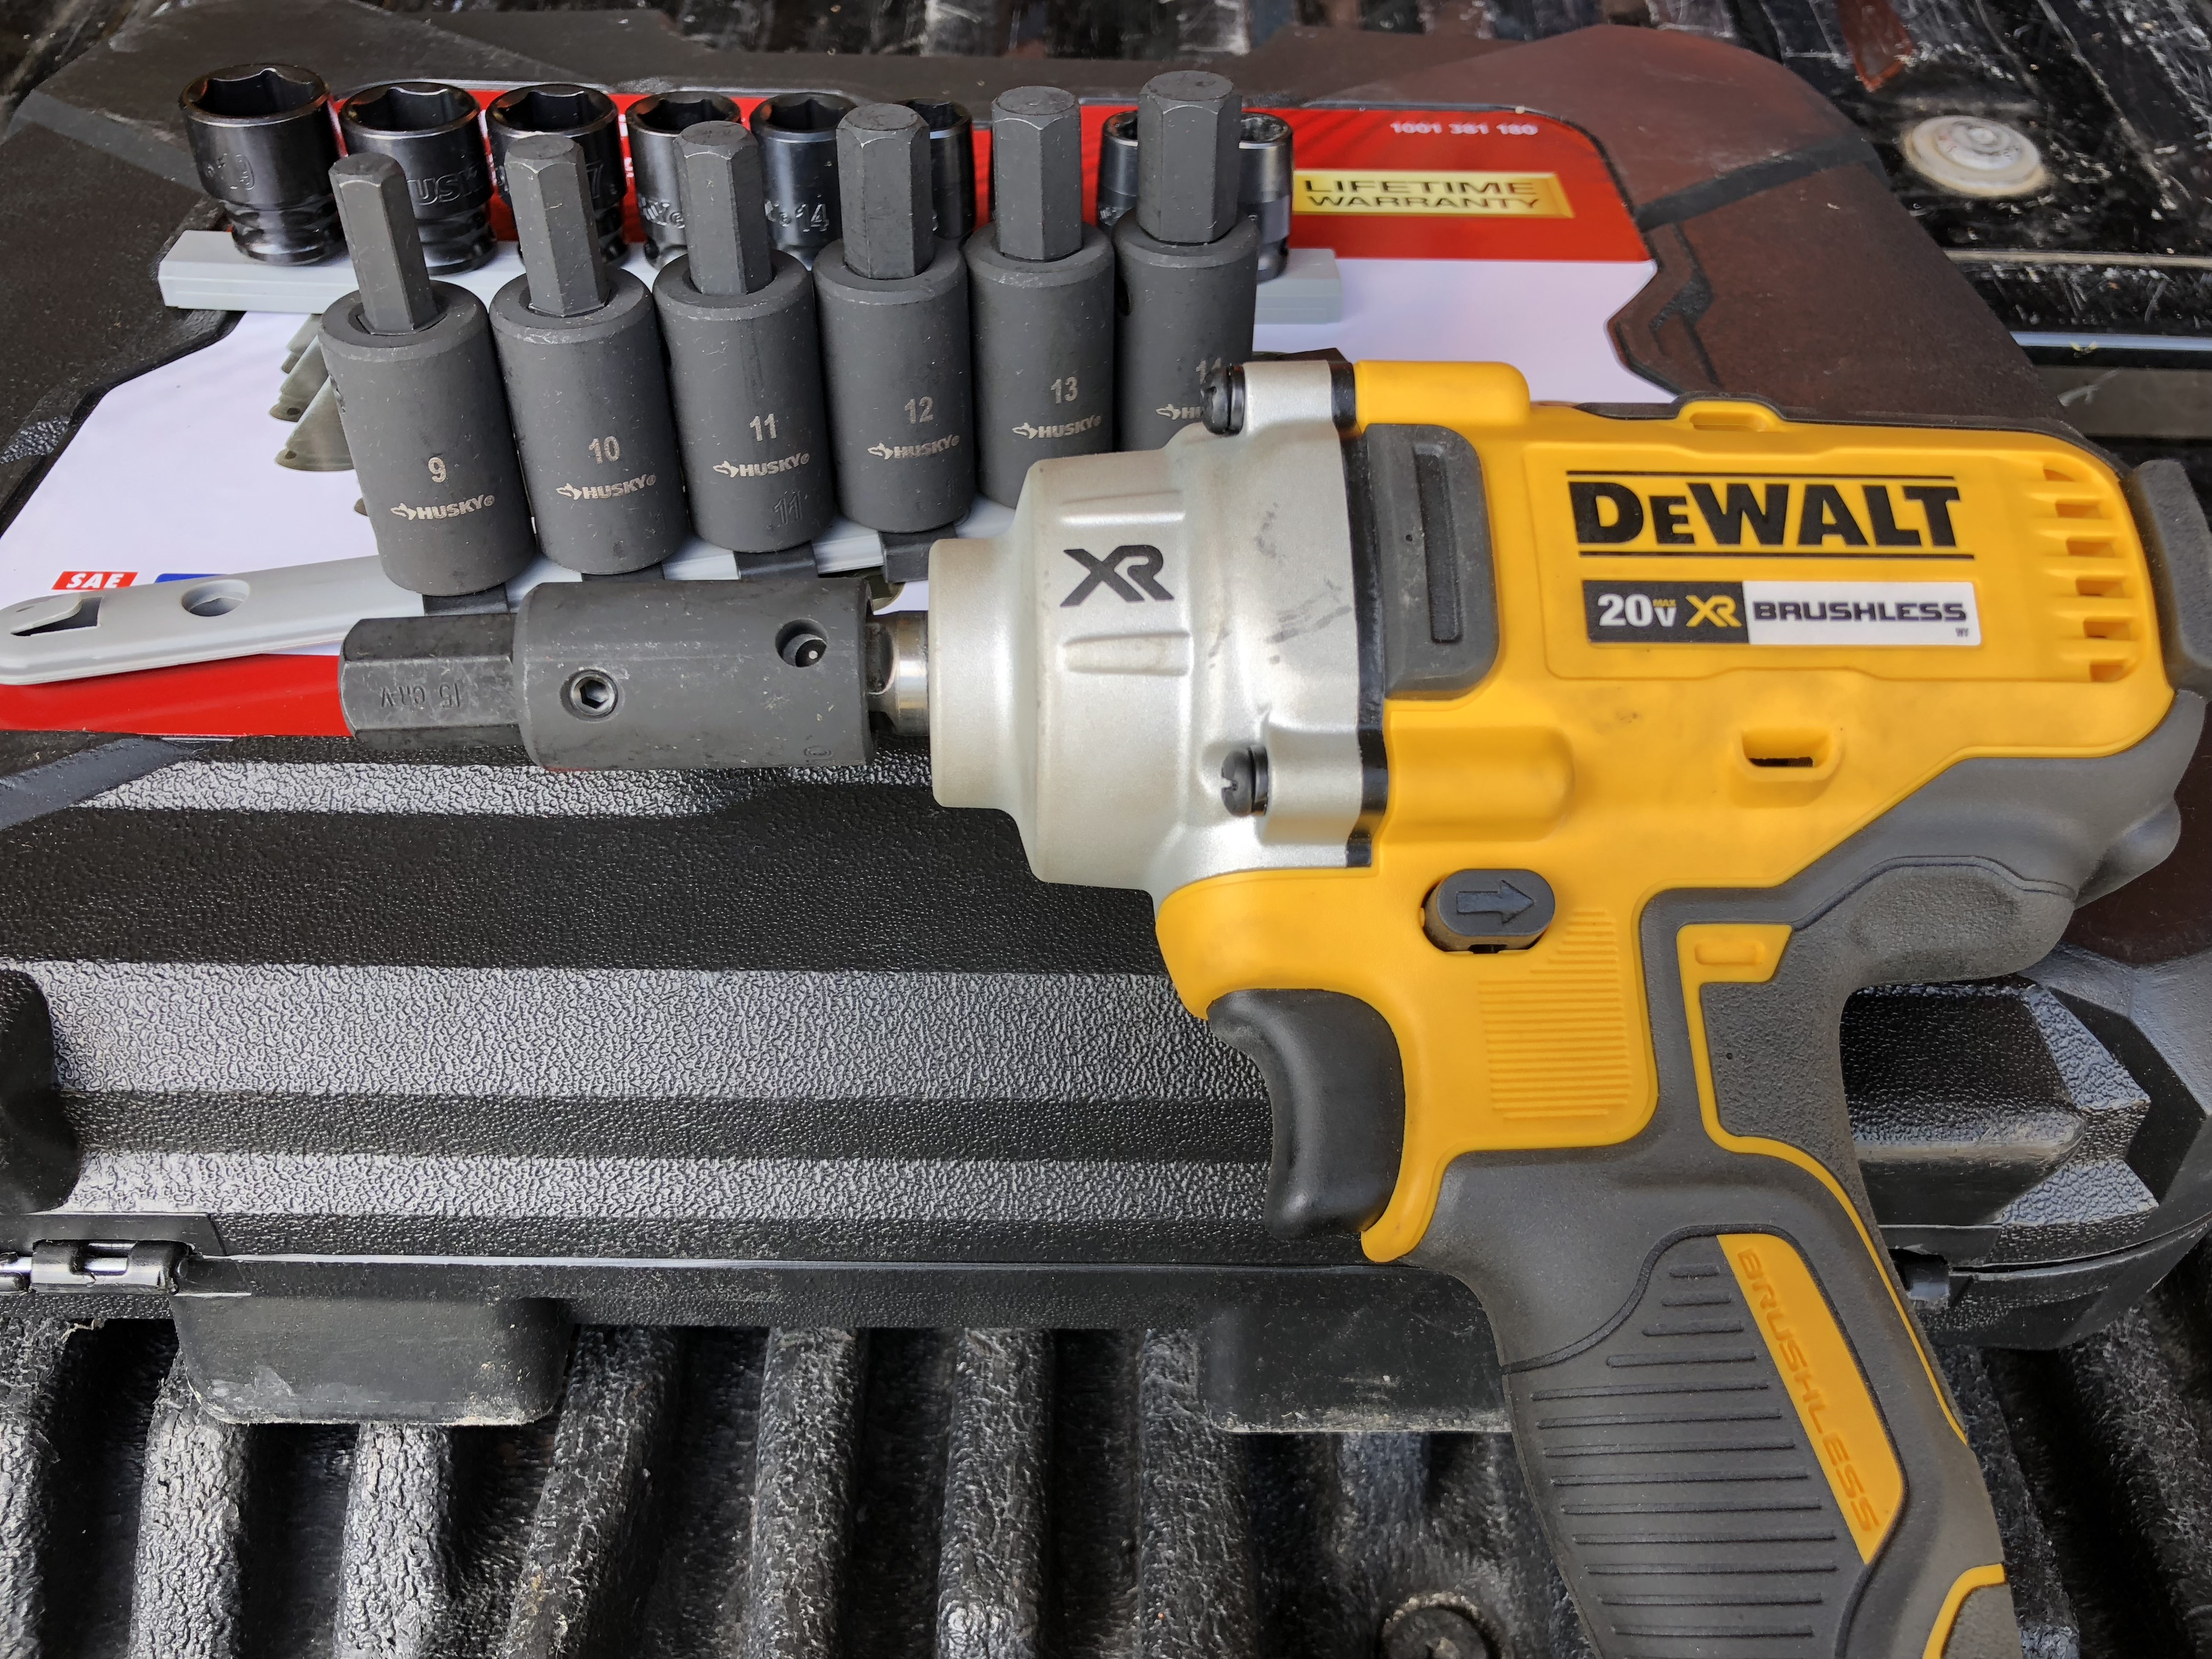 Truck and trailer maintenance with DeWalt and Husky – #THDProspective #HomeDepot